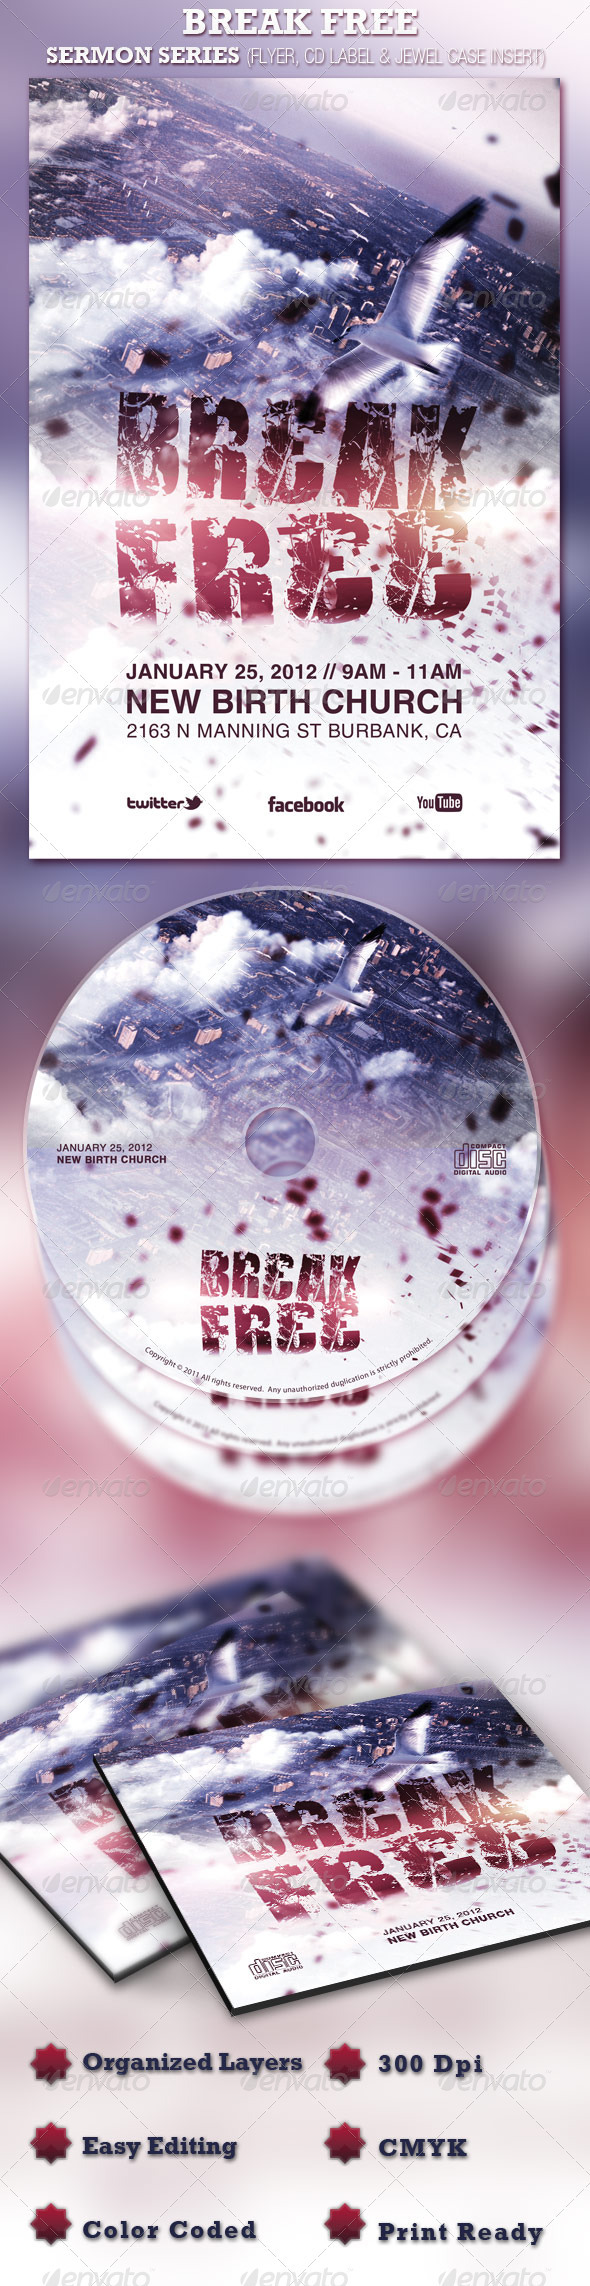 Break Free Church Flyer and CD Template - Church Flyers